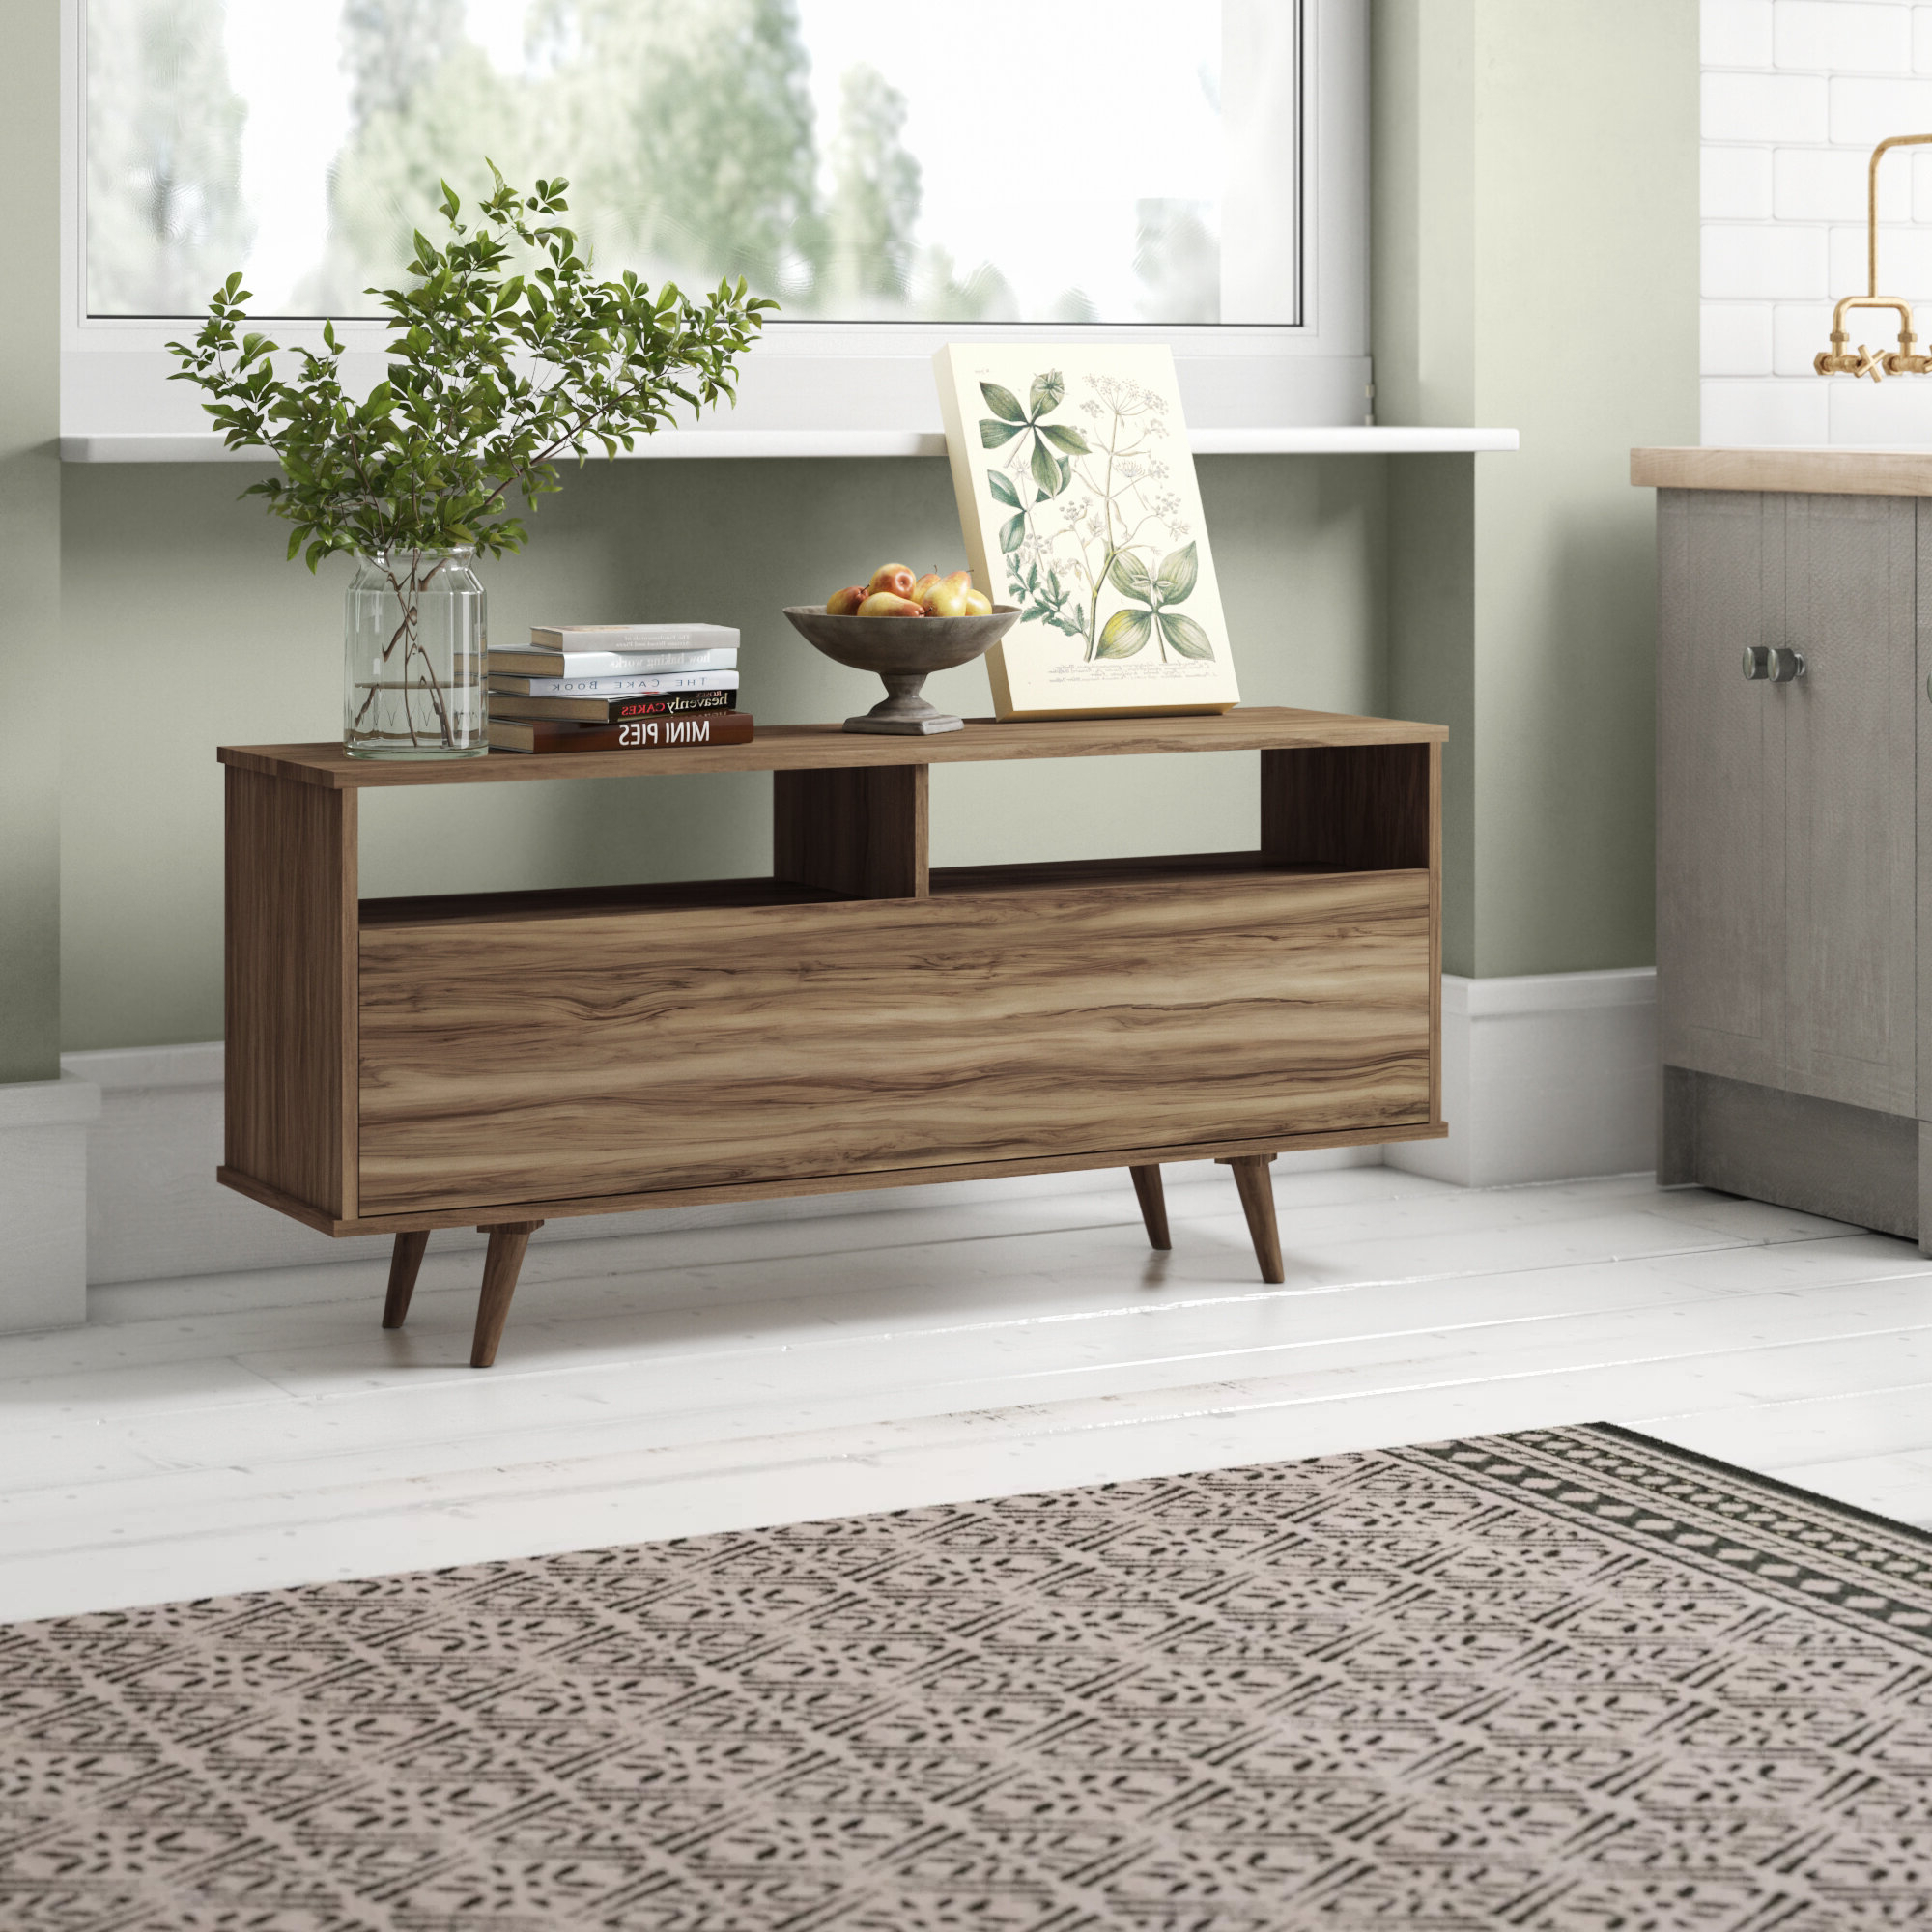 2021 Latest Dovray Sideboards